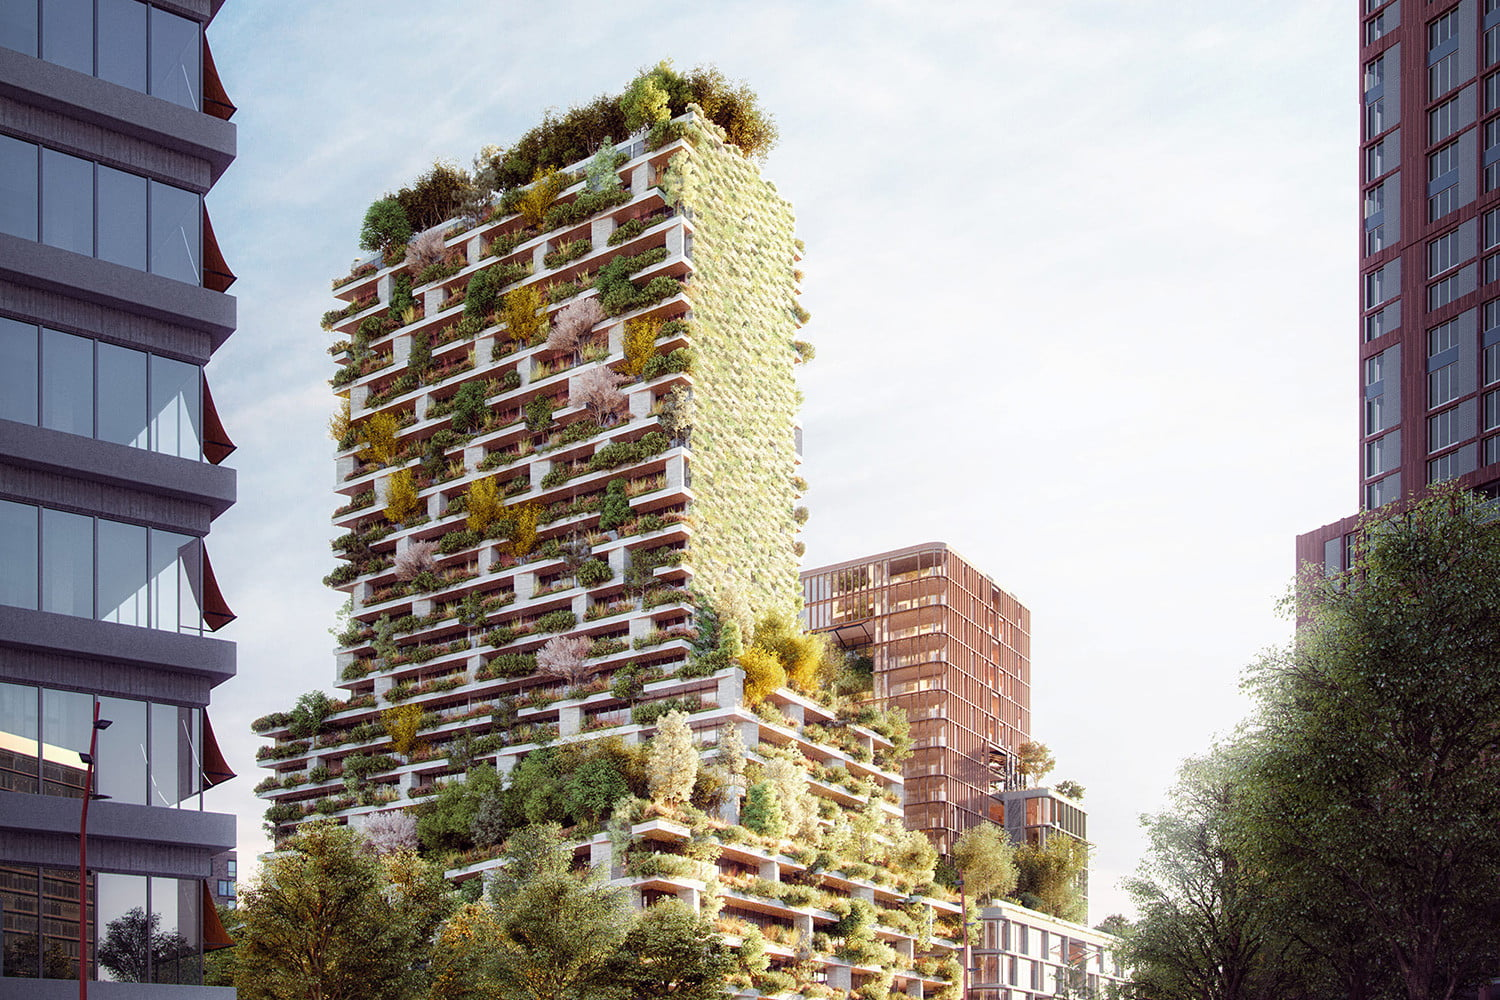 These Wild Farms and Forests are Taking Root on Skyscrapers